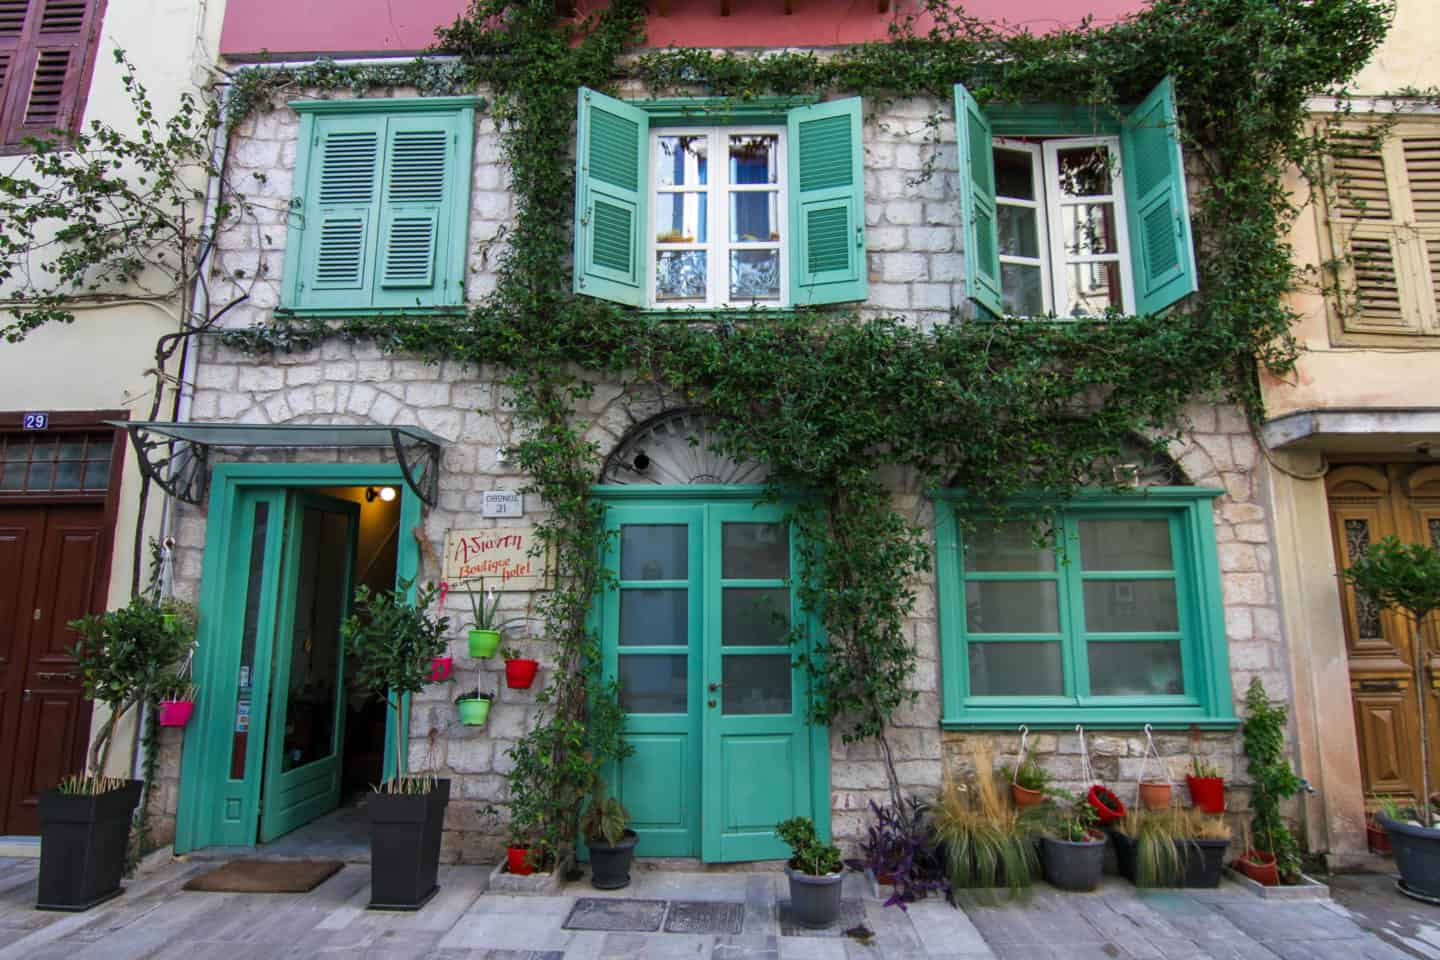 16 Fantastic Things To Do In Nafplio On A Day Trip from Athens